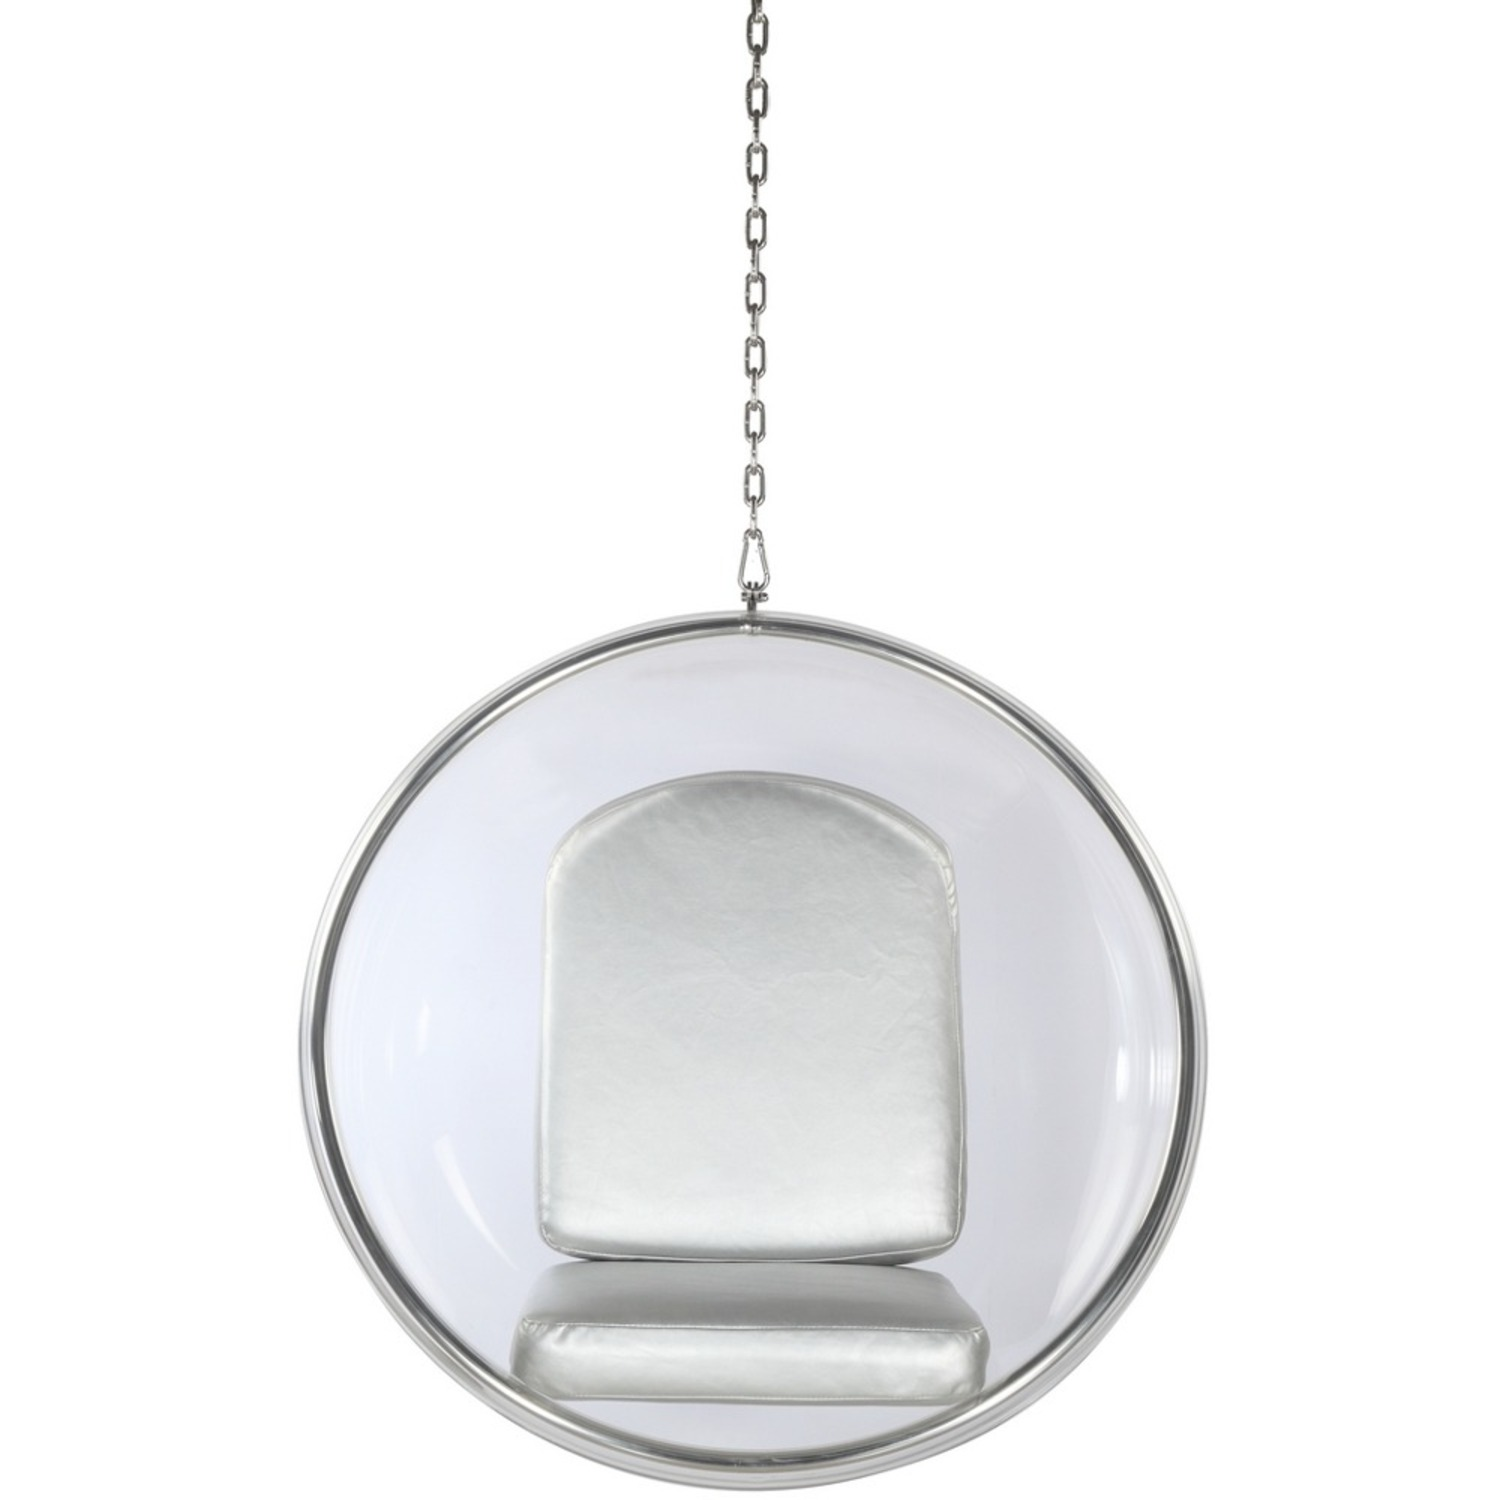 Hanging Chair In Clear Acrylic & Silver PU Leather - image-5